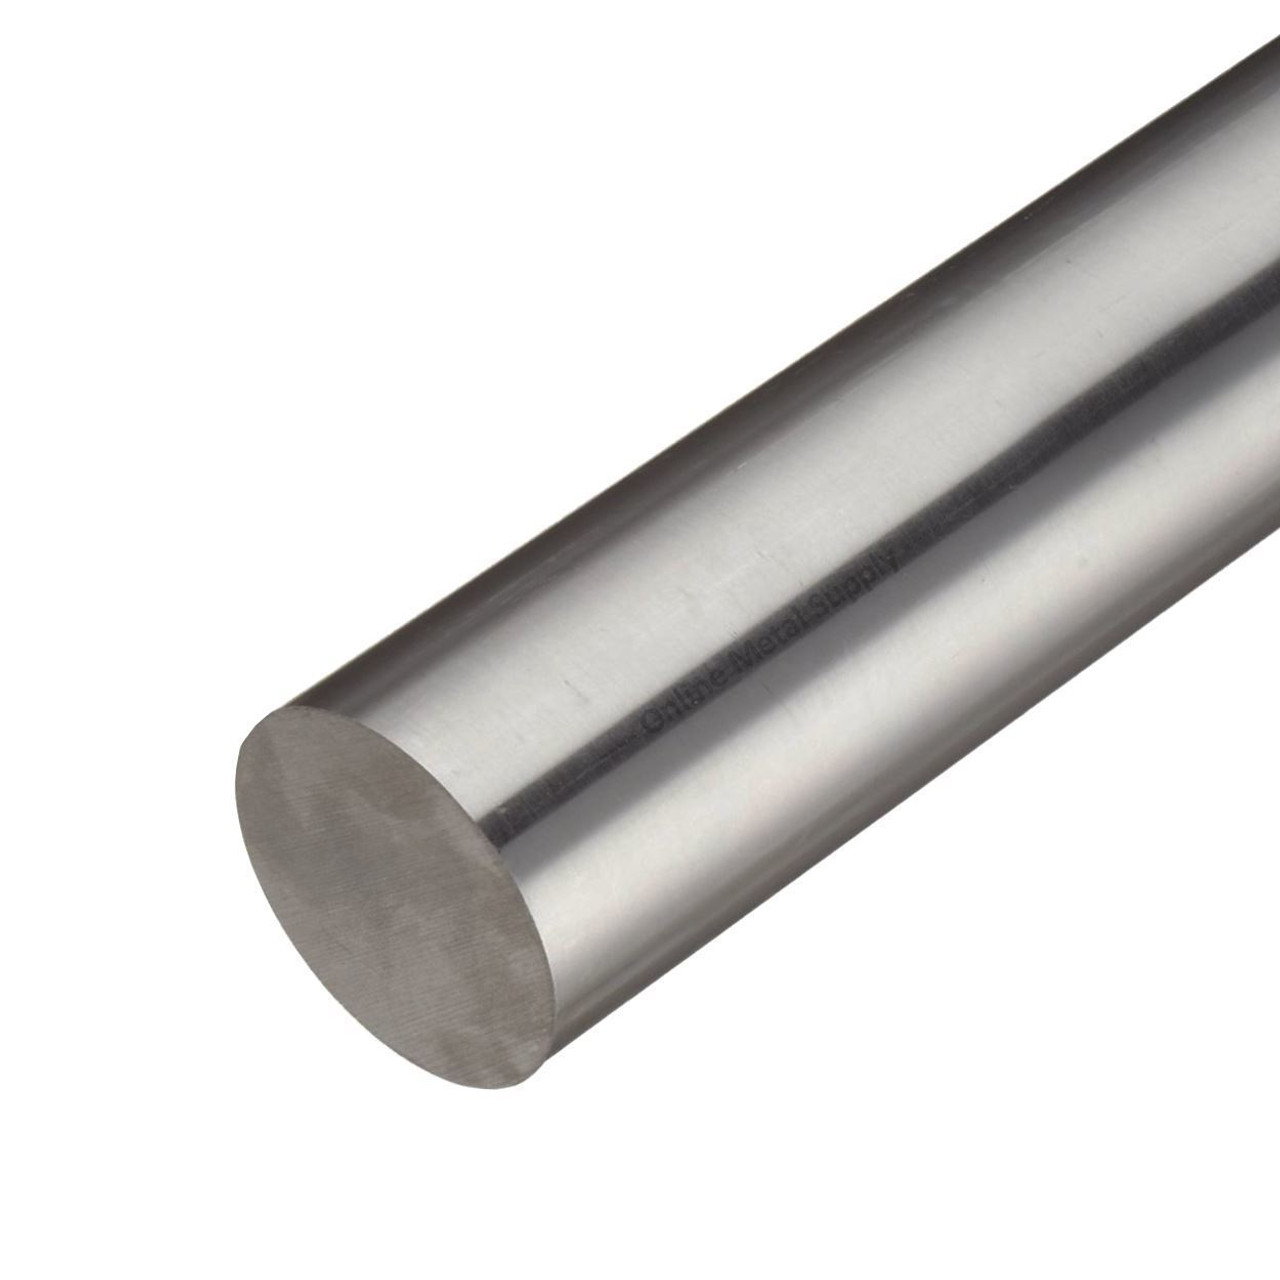 1.687 (1-11/16 inch) x 12 inches, 416 CF Stainless Steel Round Rod